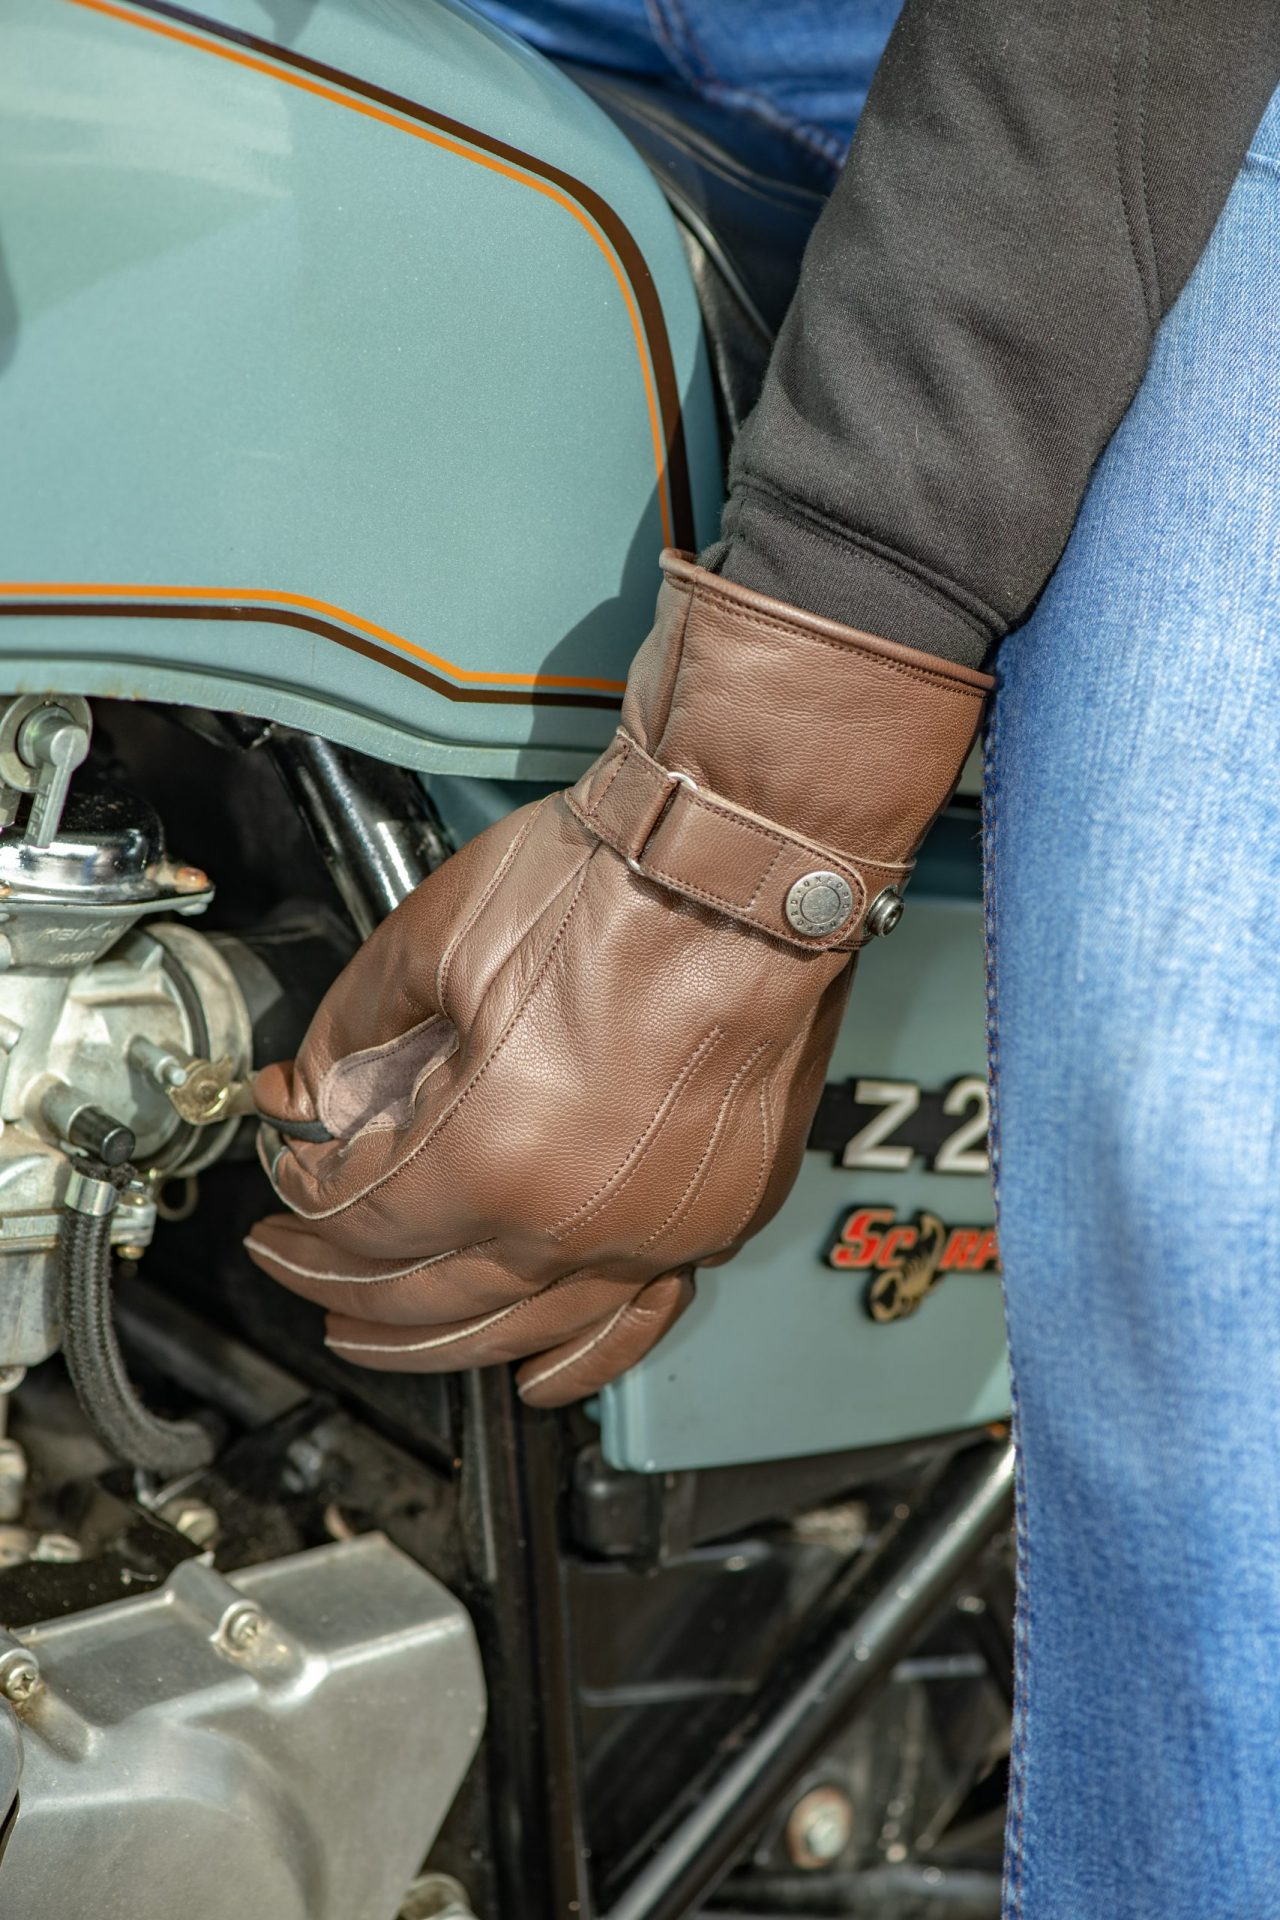 GM215102-Holton-2.0-MS-Glove-Brown-10-scaled Holton WP Dry2Dry™ Urban Gloves